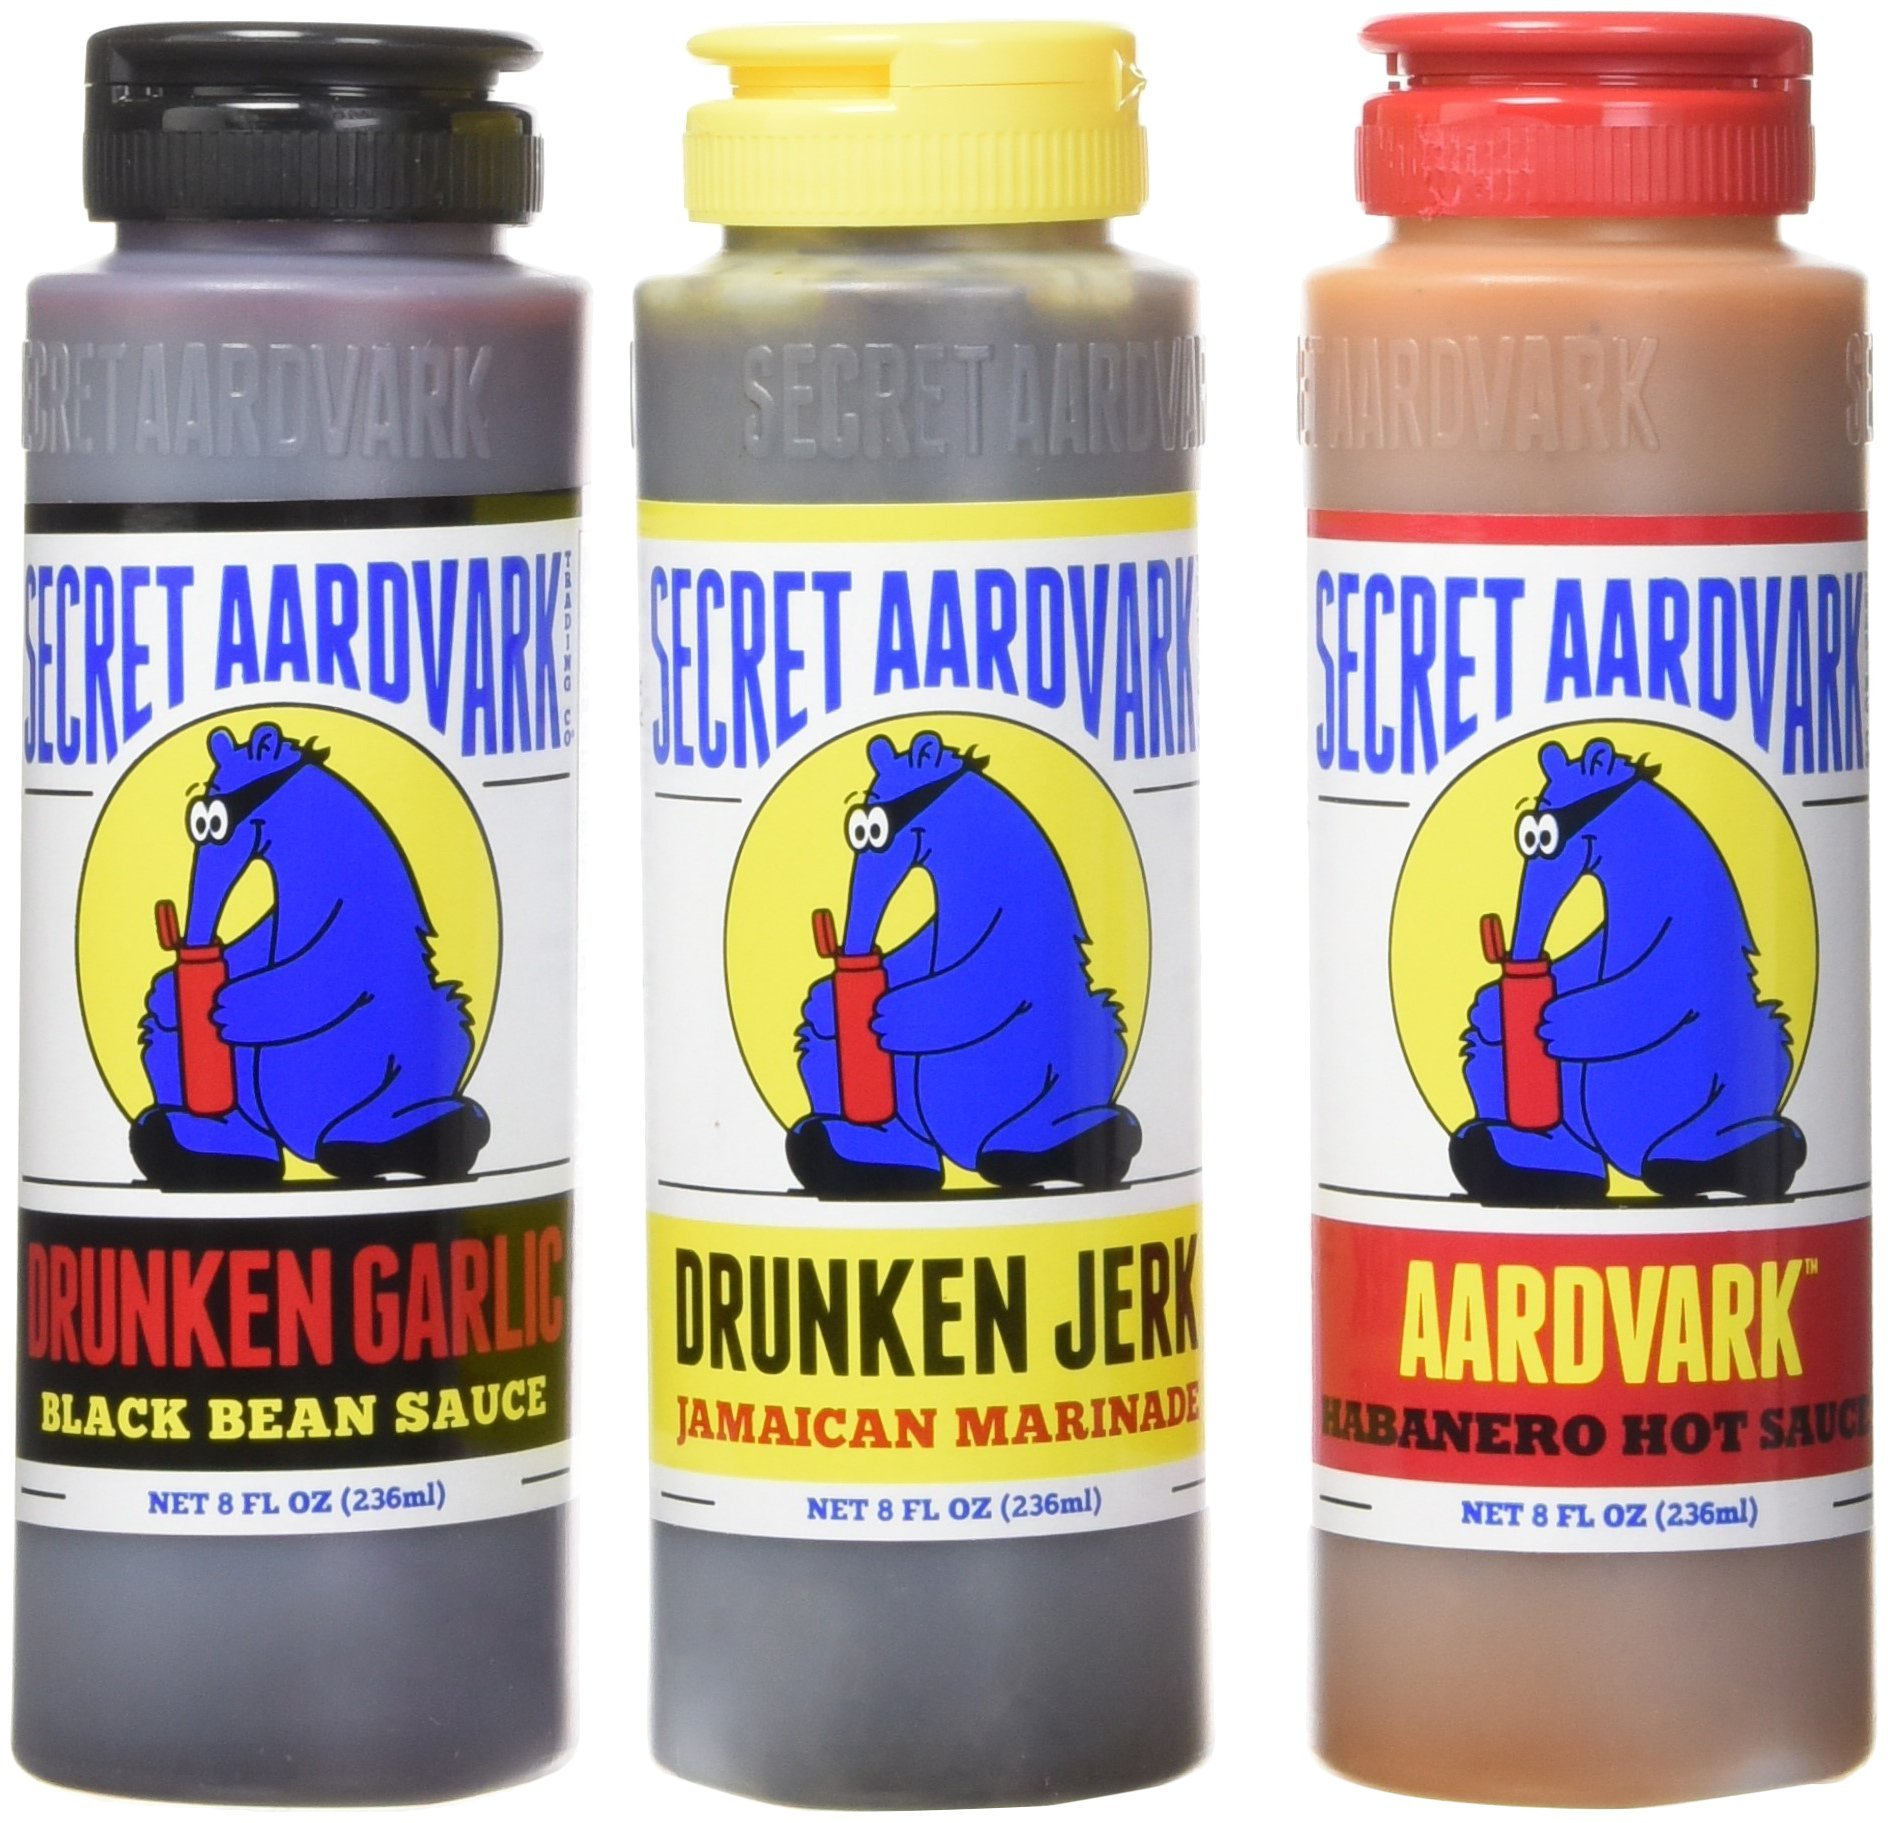 Secret Aardvark Combo 3-Pack, 8 fl oz by Secret Aardvark